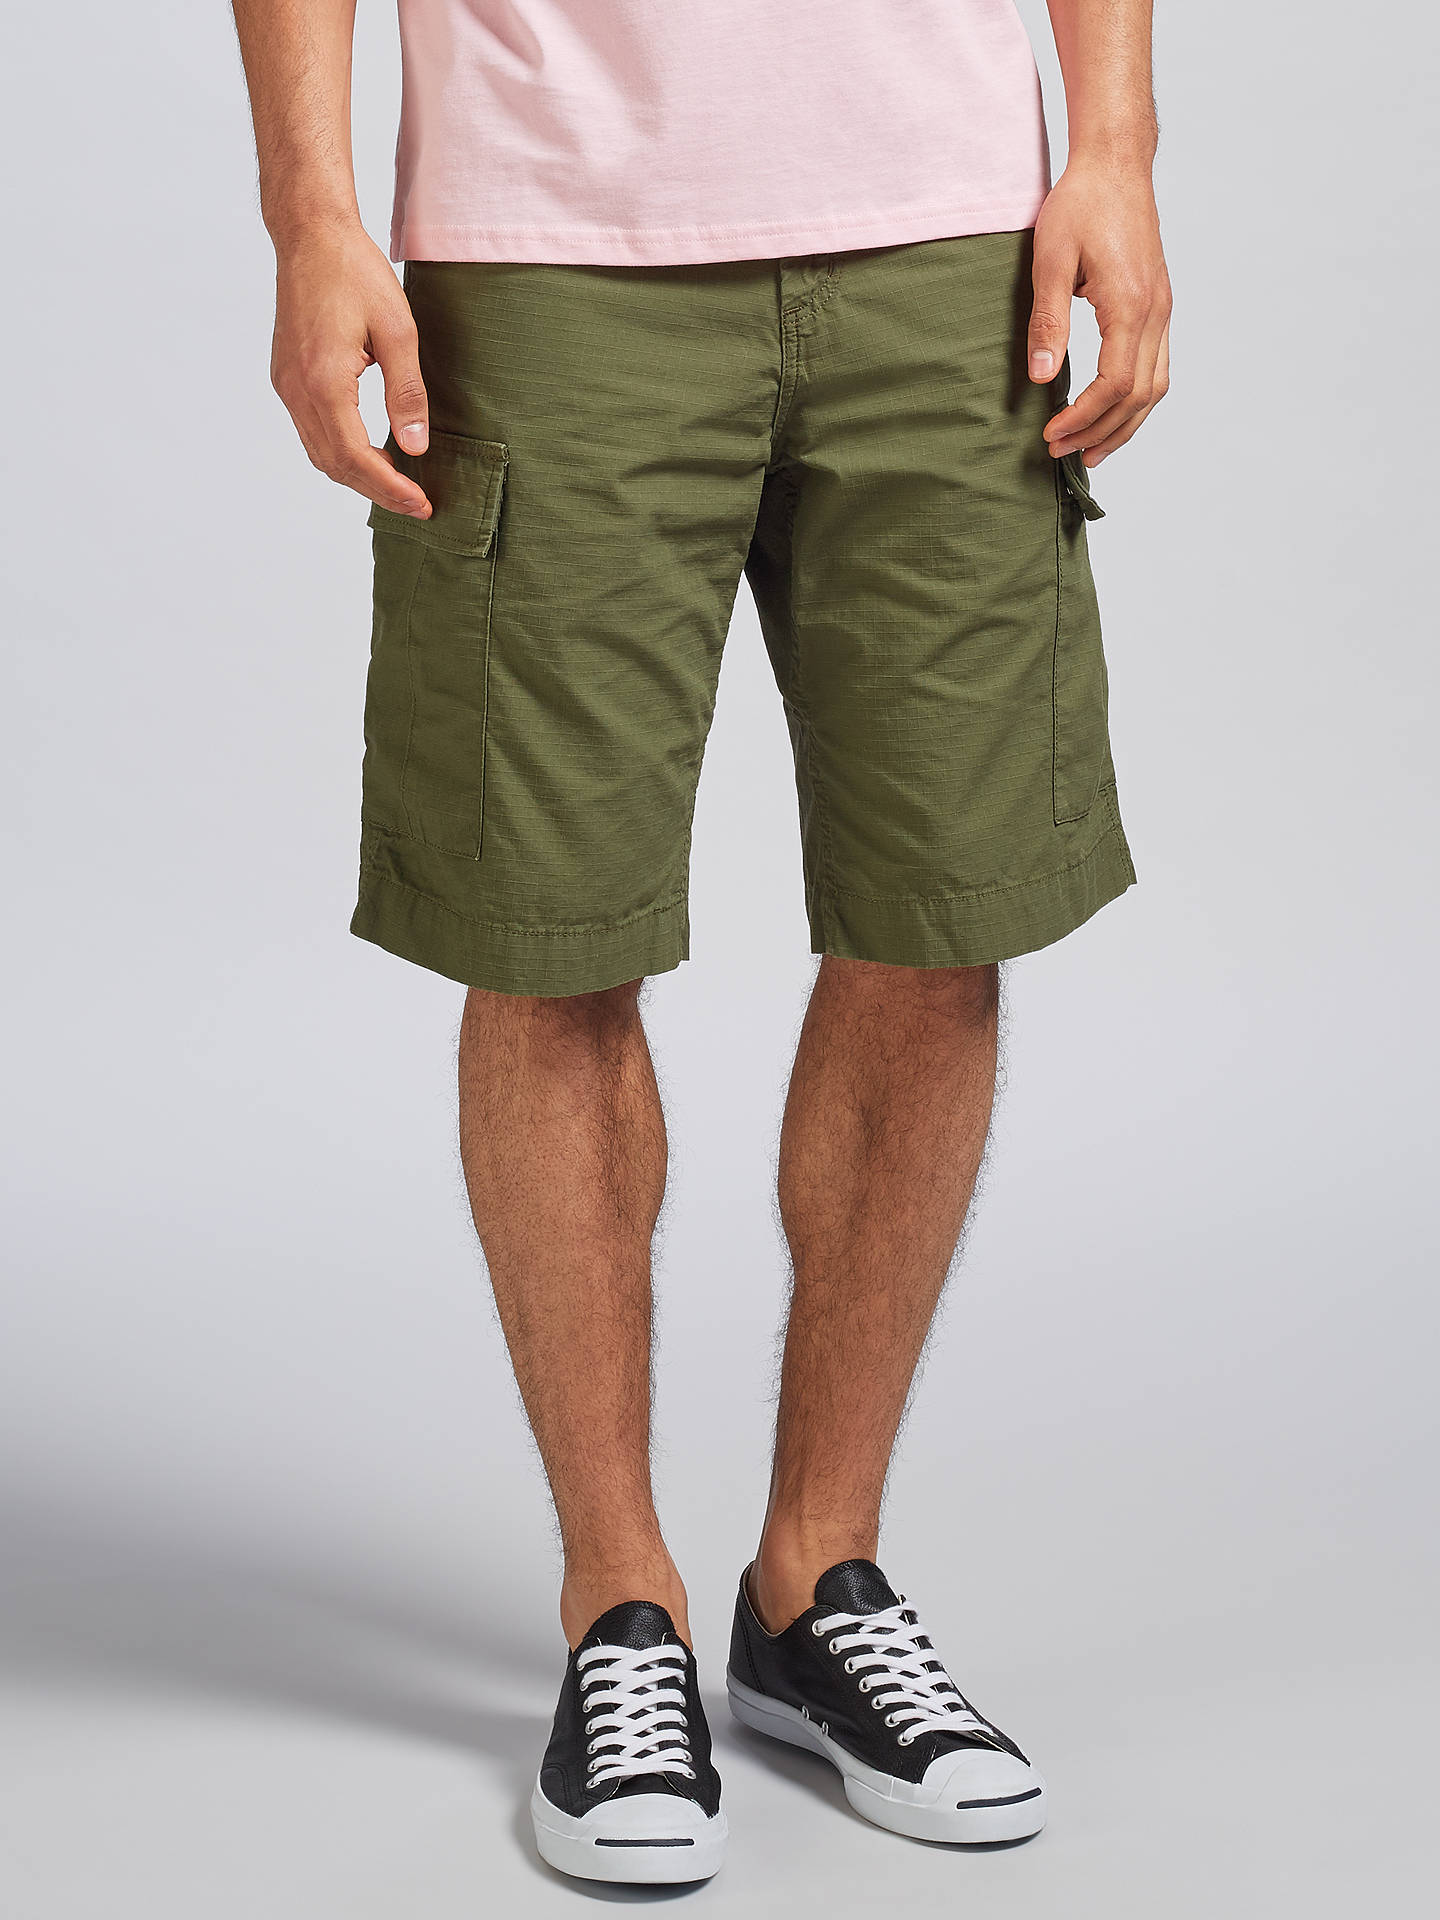 6ce98057b8 Buy Carhartt WIP Regular Fit Cargo Shorts, Rover Green, 30R Online at  johnlewis.